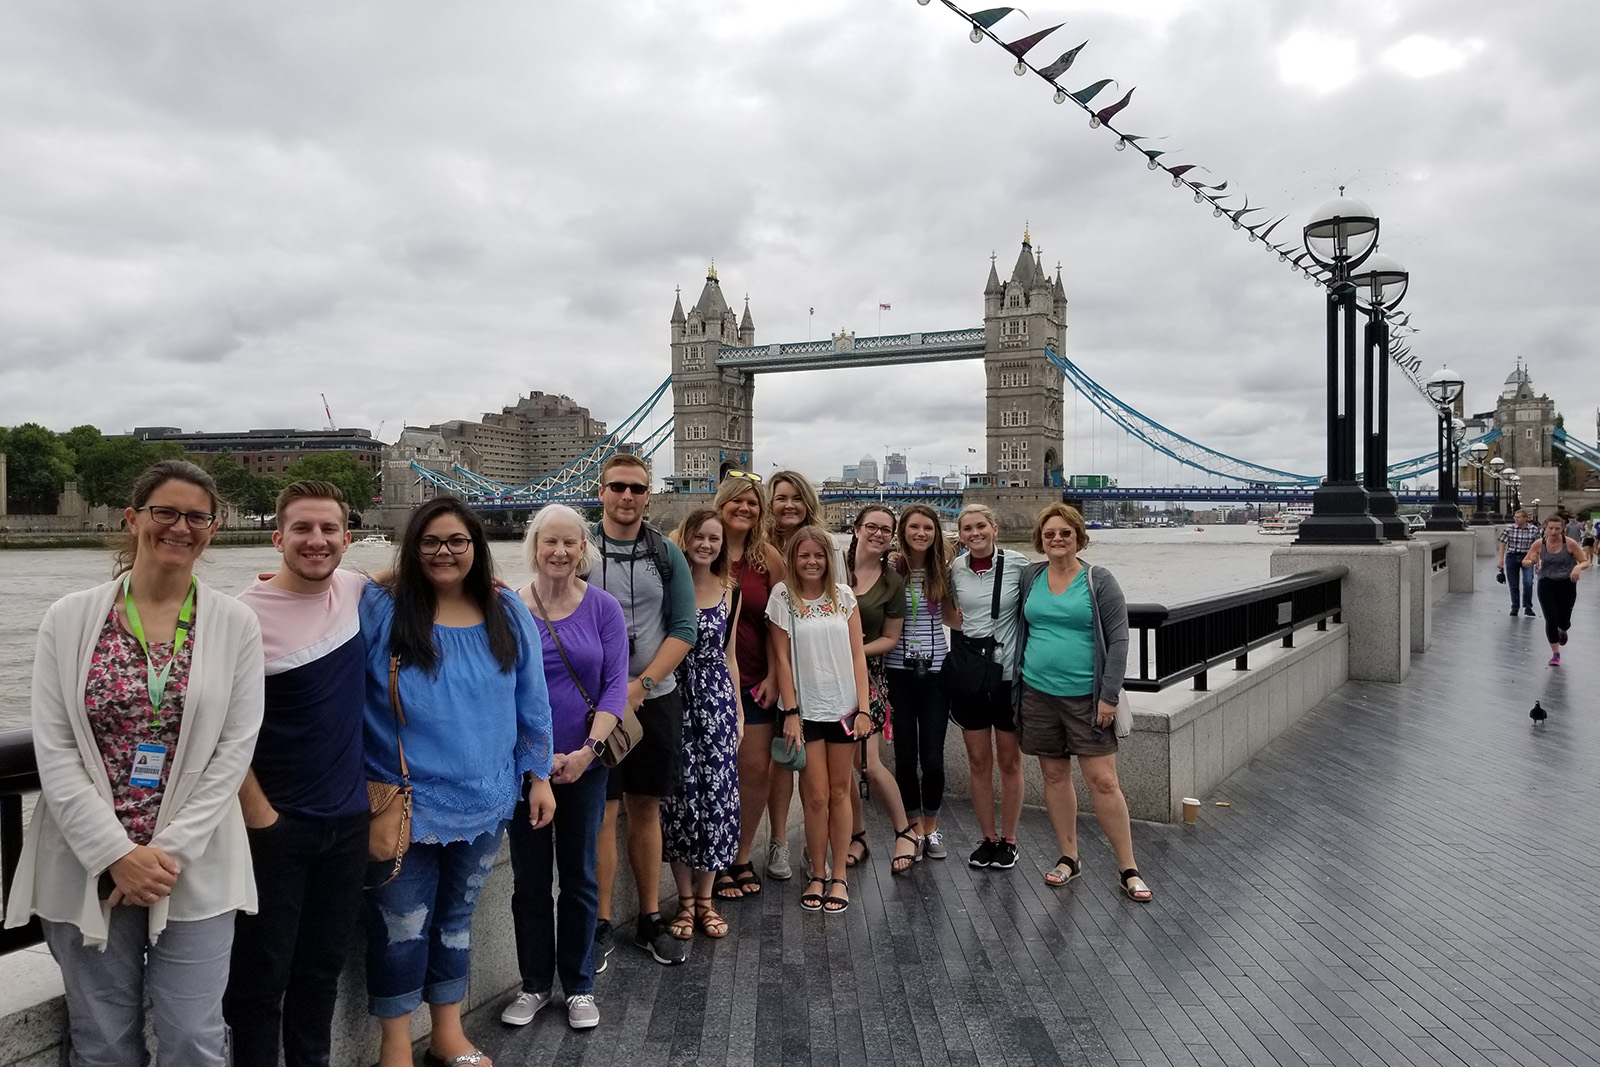 Students and faculty pause for a photo in front of the London Bridge